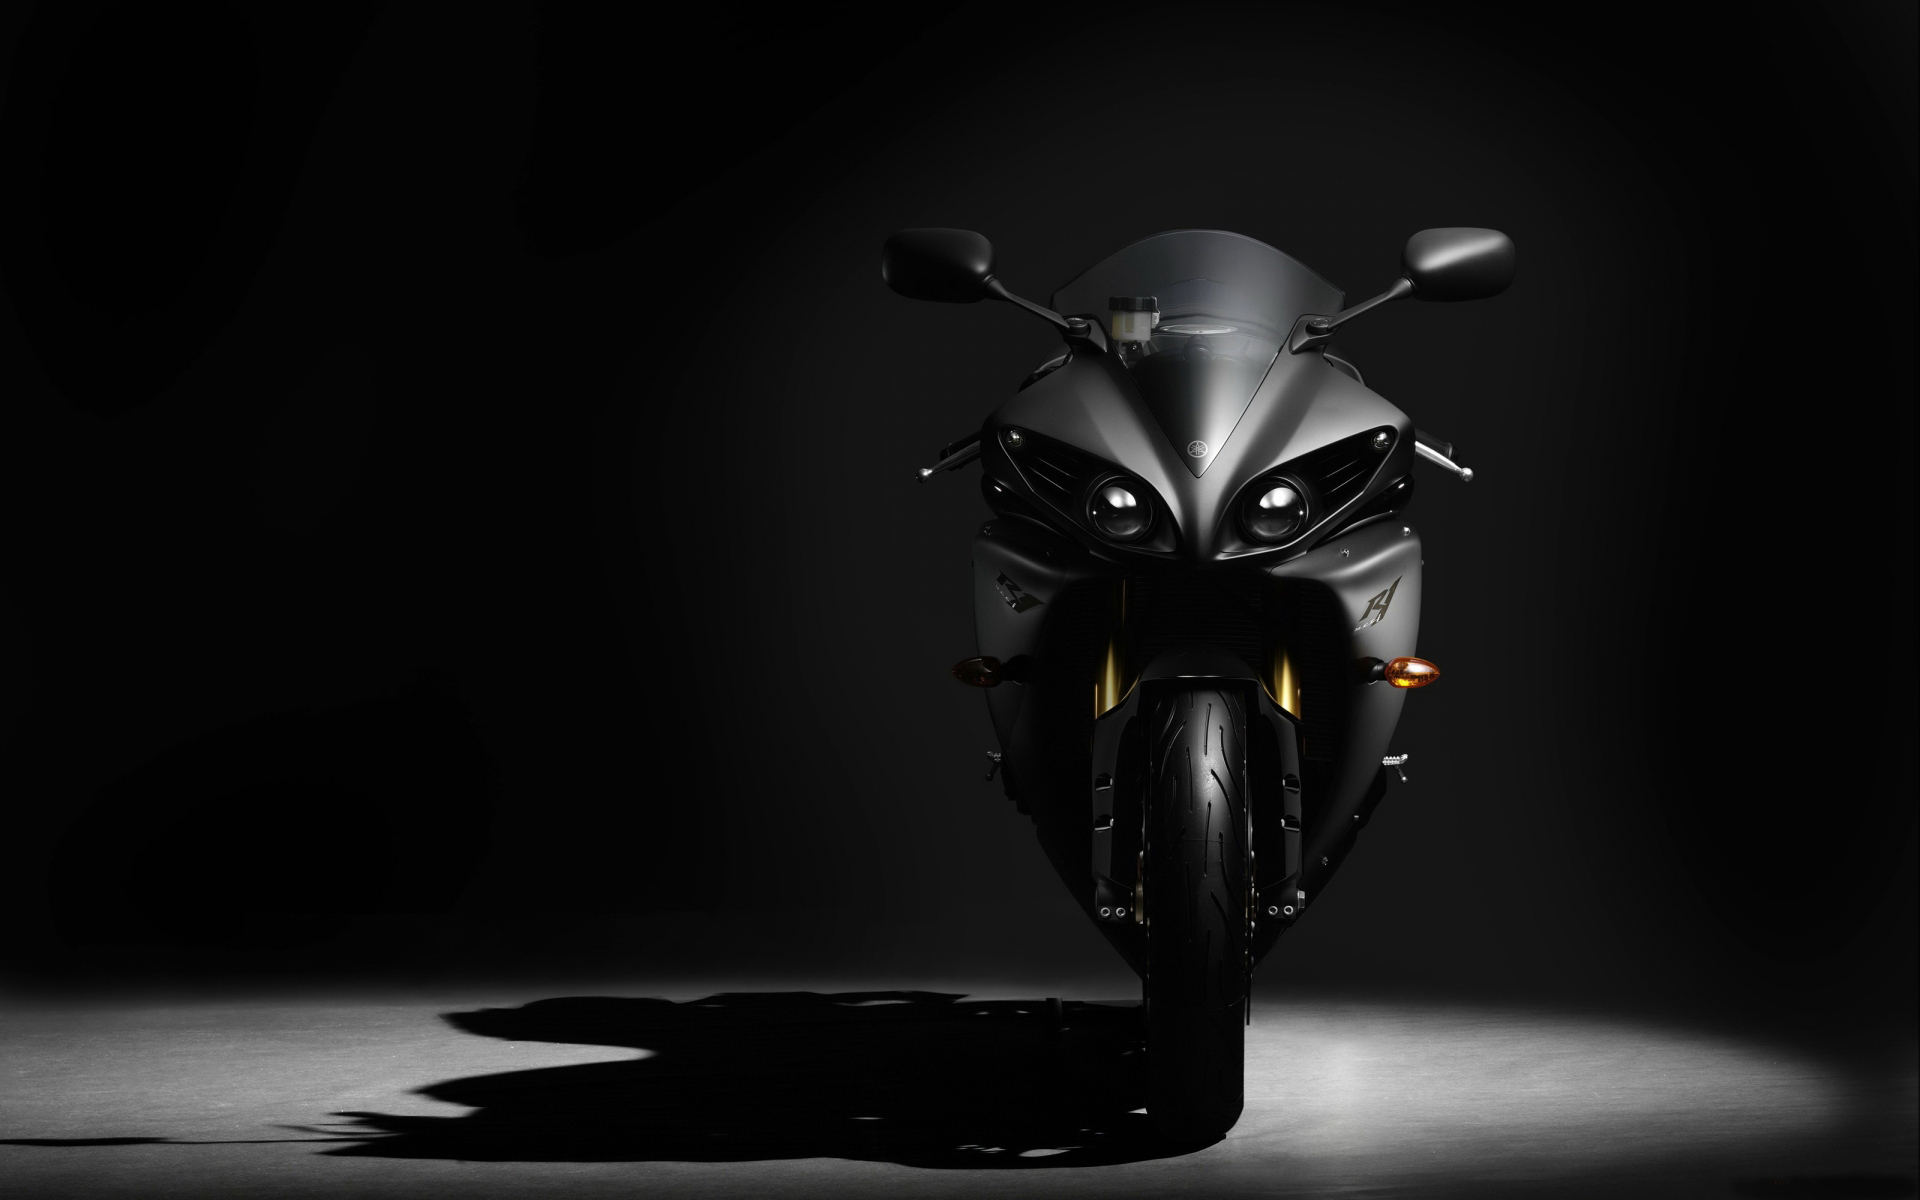 Black Bike Pictures HD